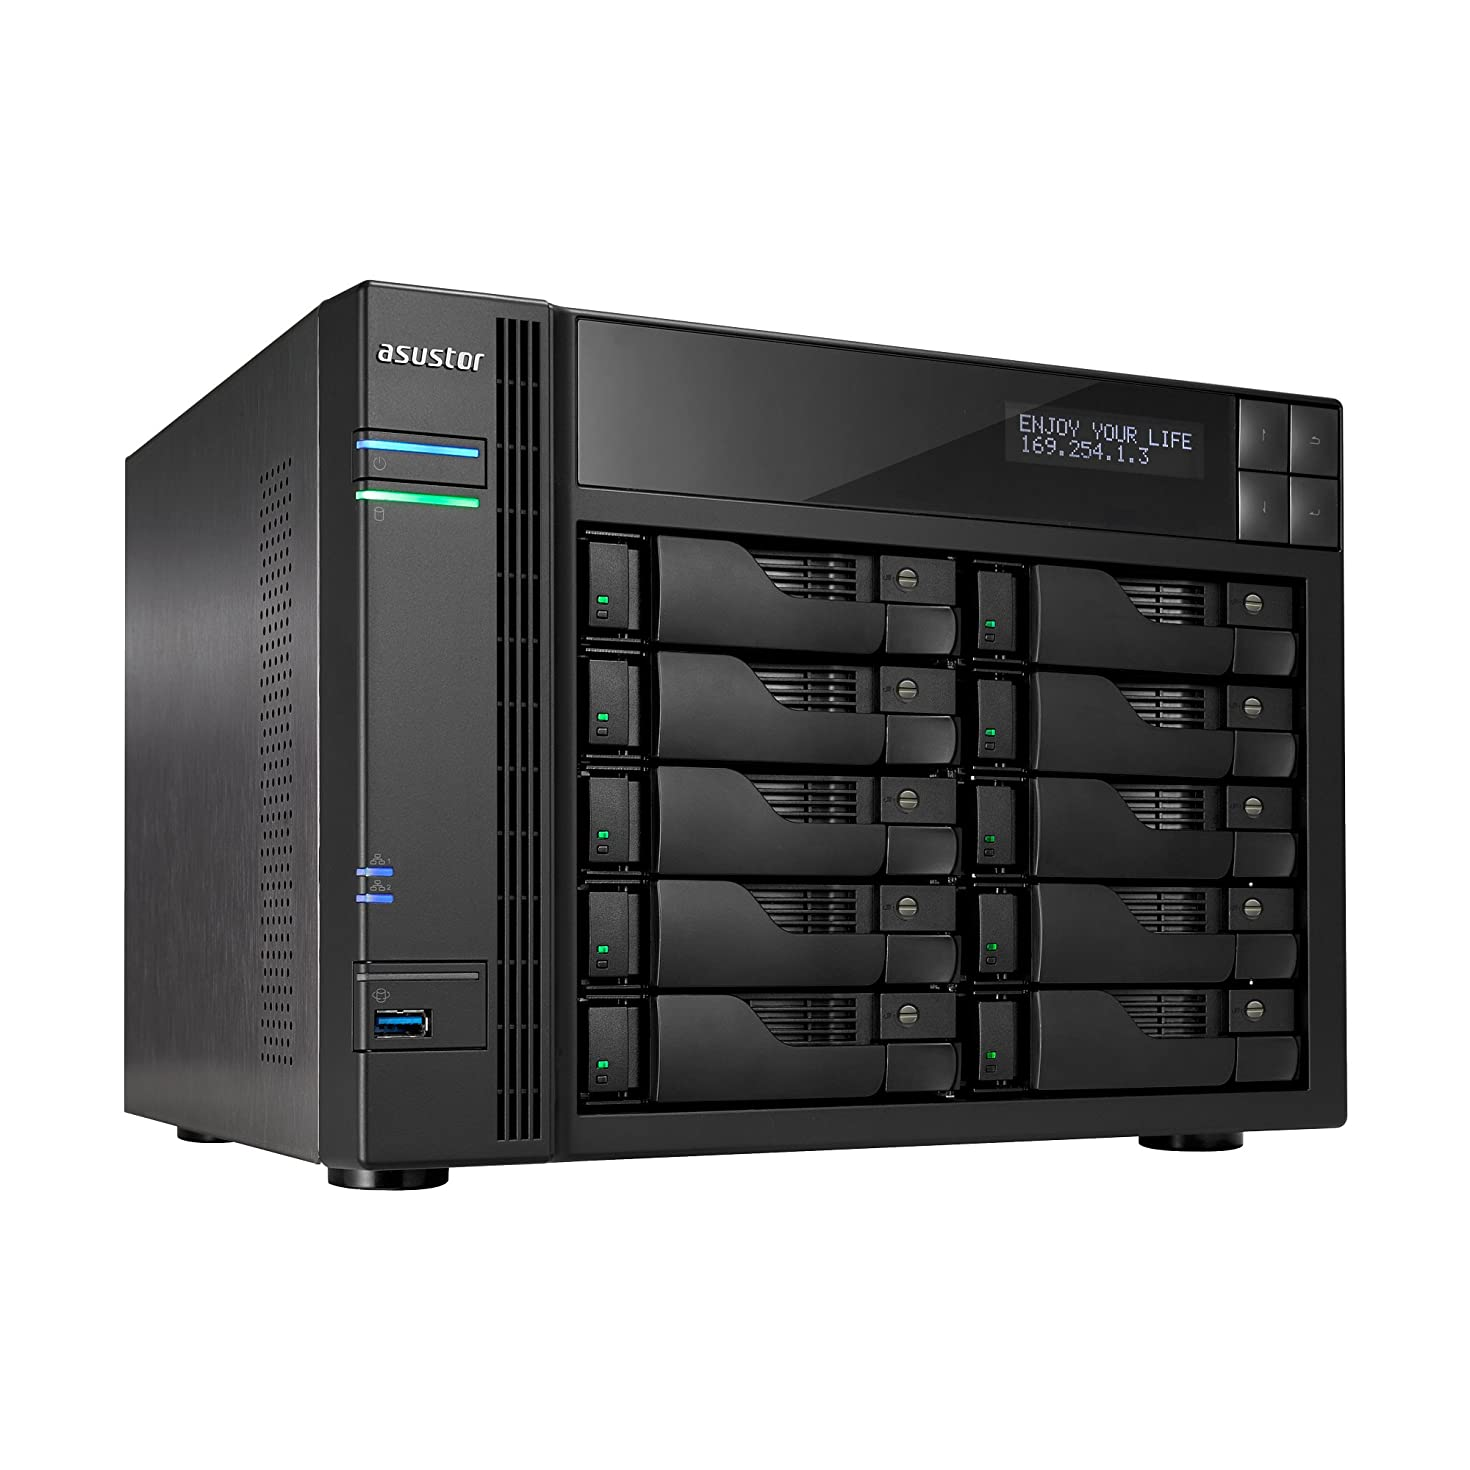 Asustor AS6210T | Network Attached Storage + Free exFAT License | 1.6GHz Quad-Core, 4GB RAM | Personal Private Cloud | Home or Business Data Media Server (10 Bay Diskless NAS)